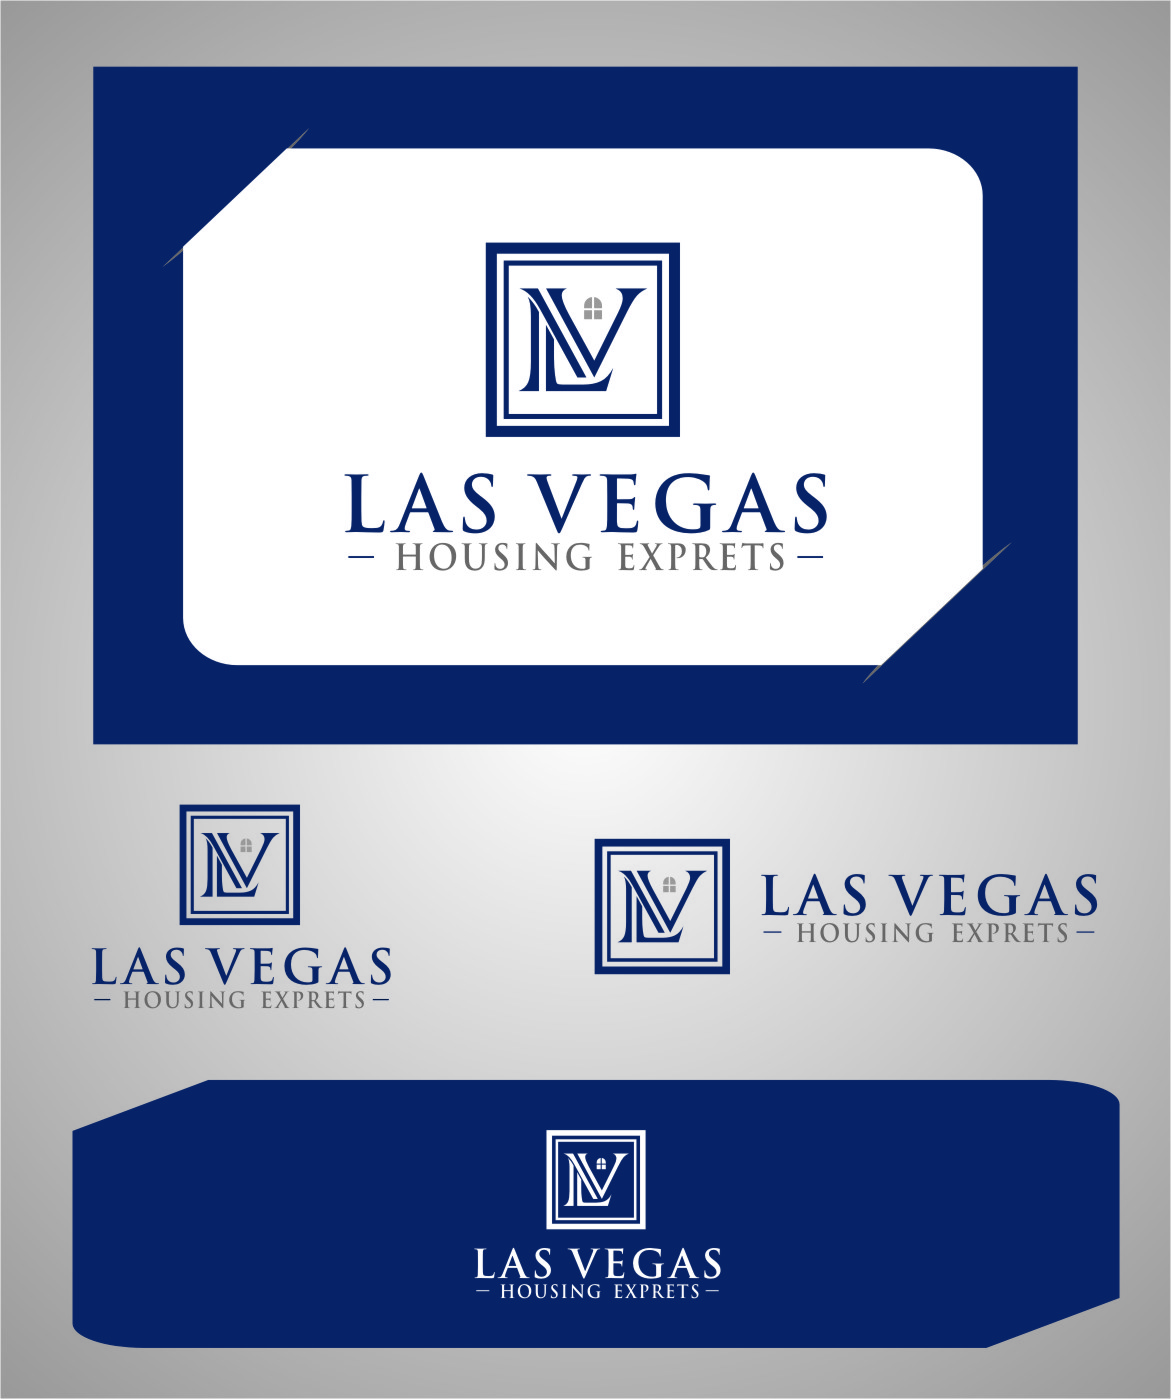 Logo Design by Ngepet_art - Entry No. 53 in the Logo Design Contest Las Vegas Housing Experts Logo Design.